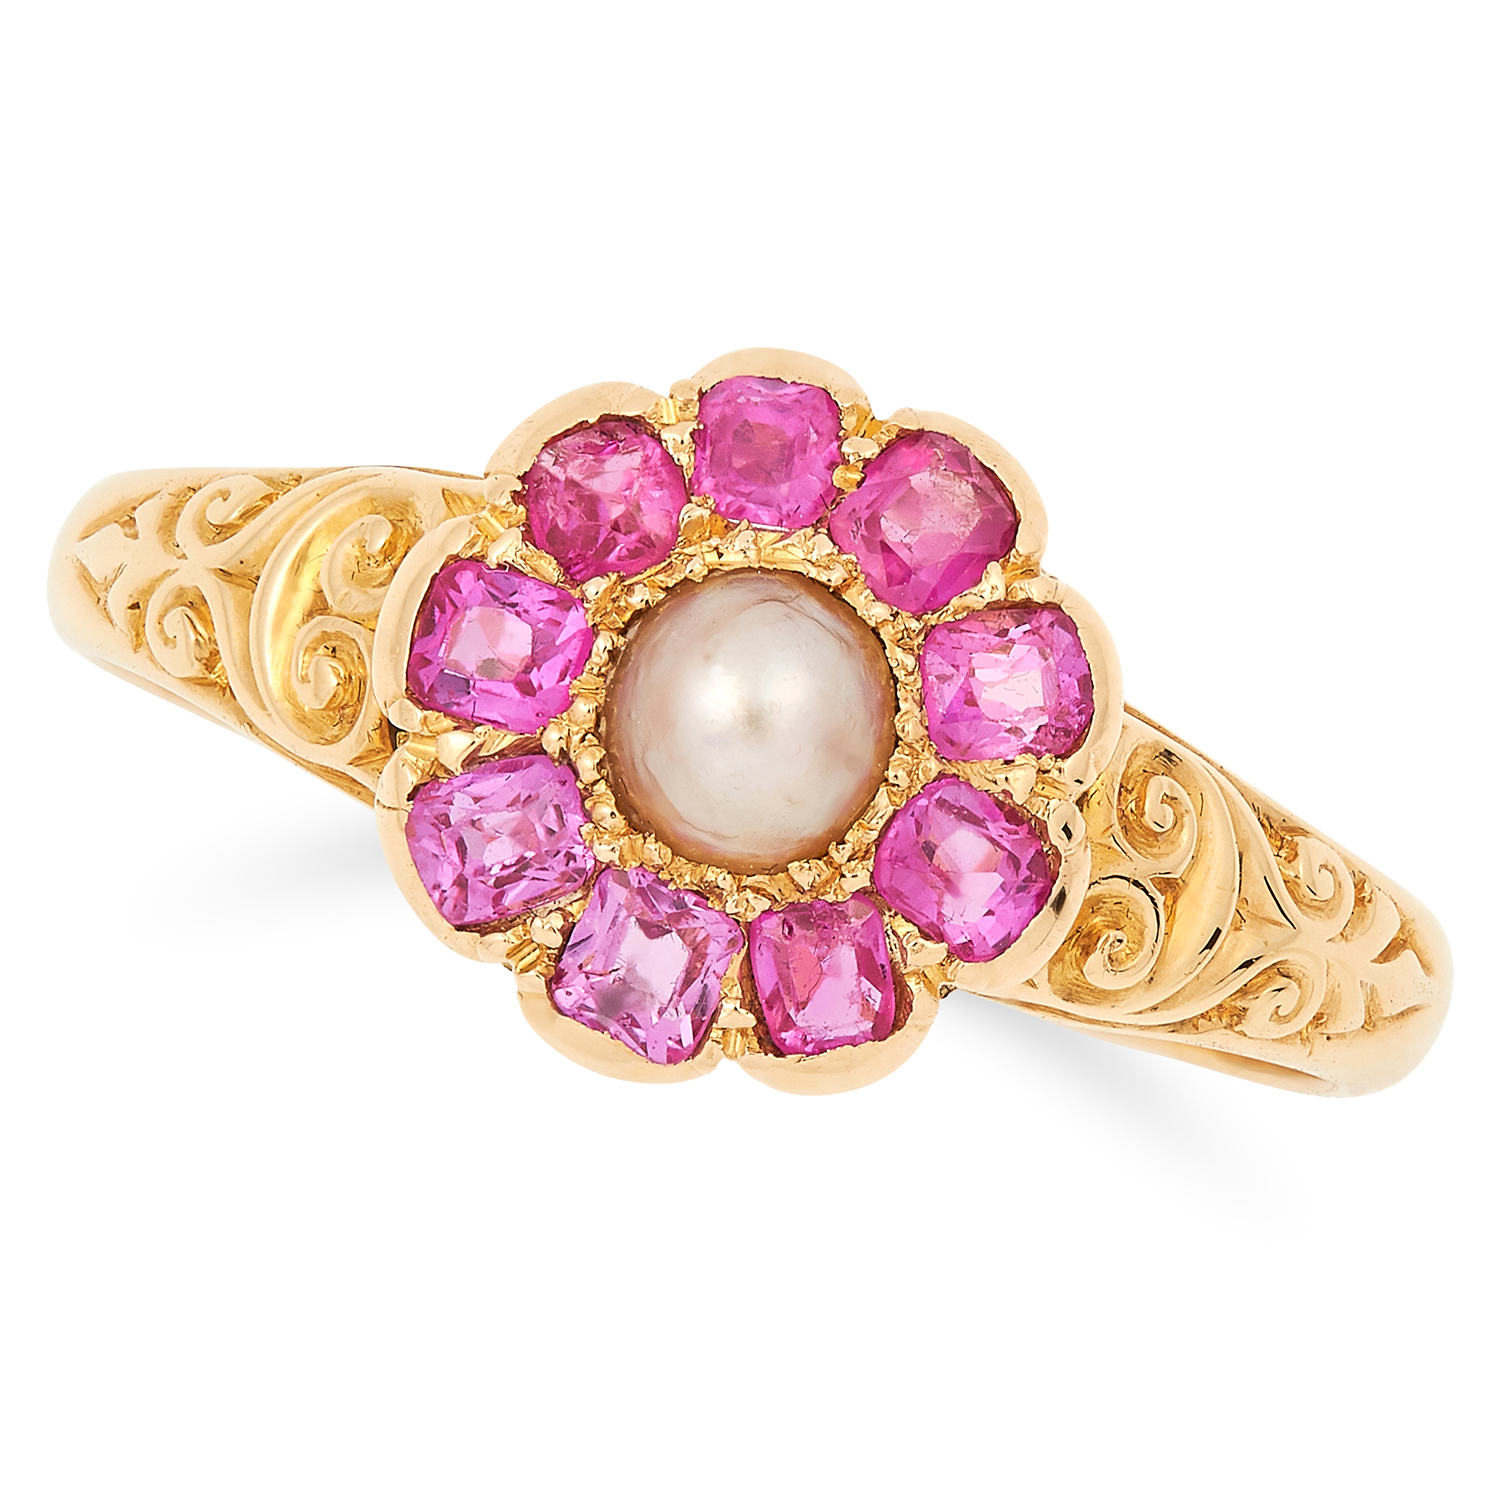 ANTIQUE PEARL AND RUBY CLUSTER RING set with a pearl in a border of cushion cut rubies, size P /